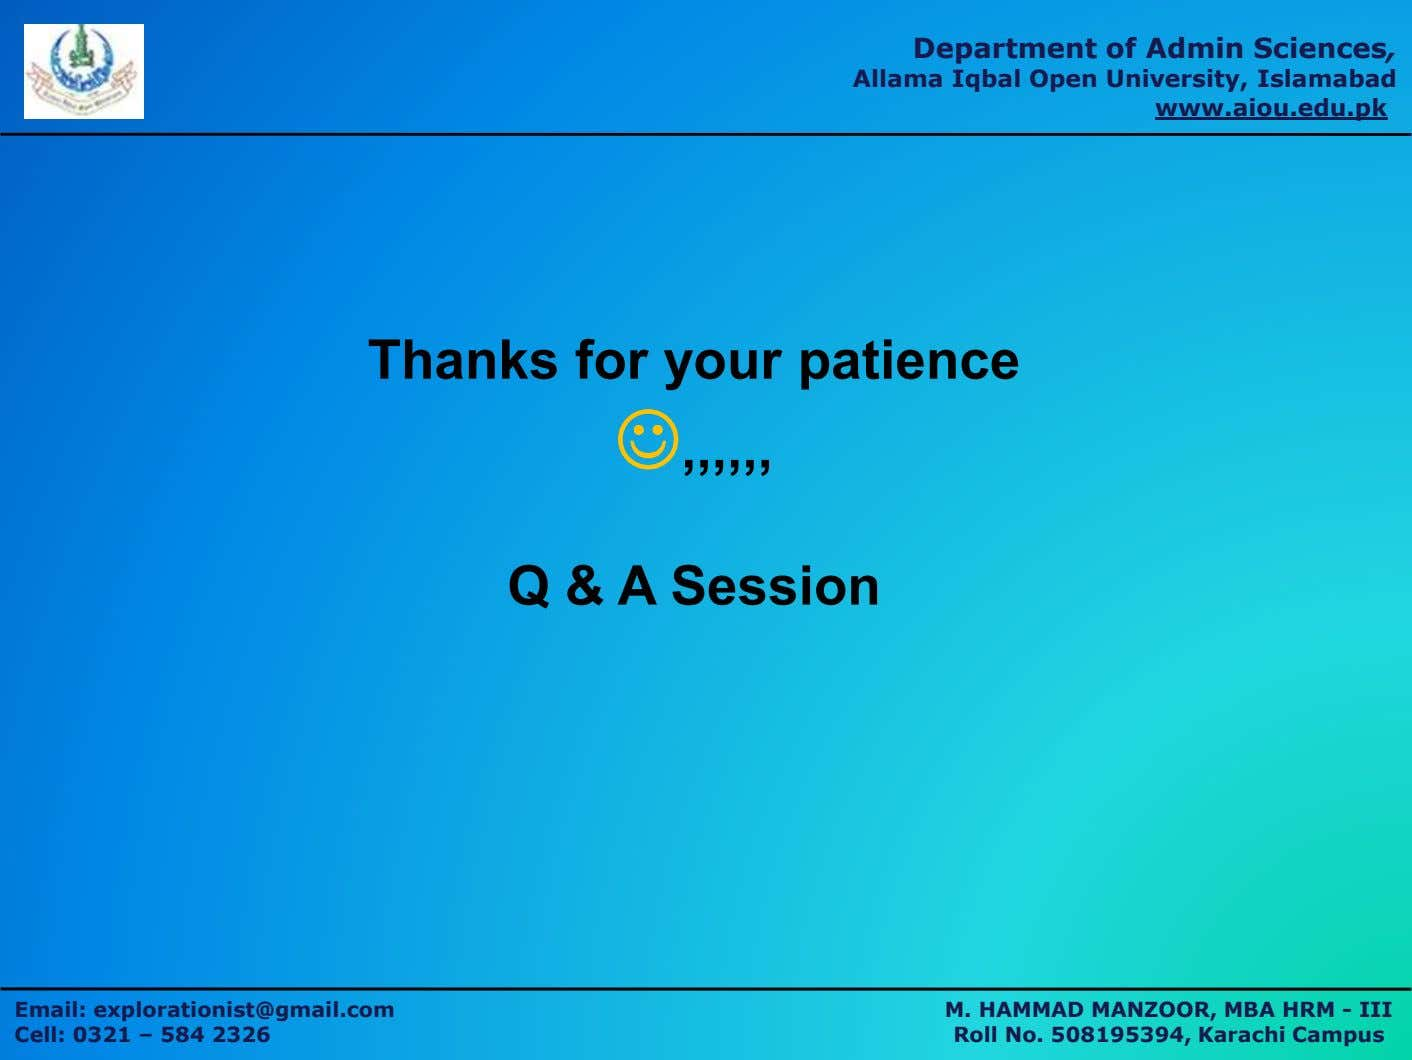 Department of Admin Sciences, Allama Iqbal Open University, Islamabad www.aiou.edu.pk Thanks for your patience